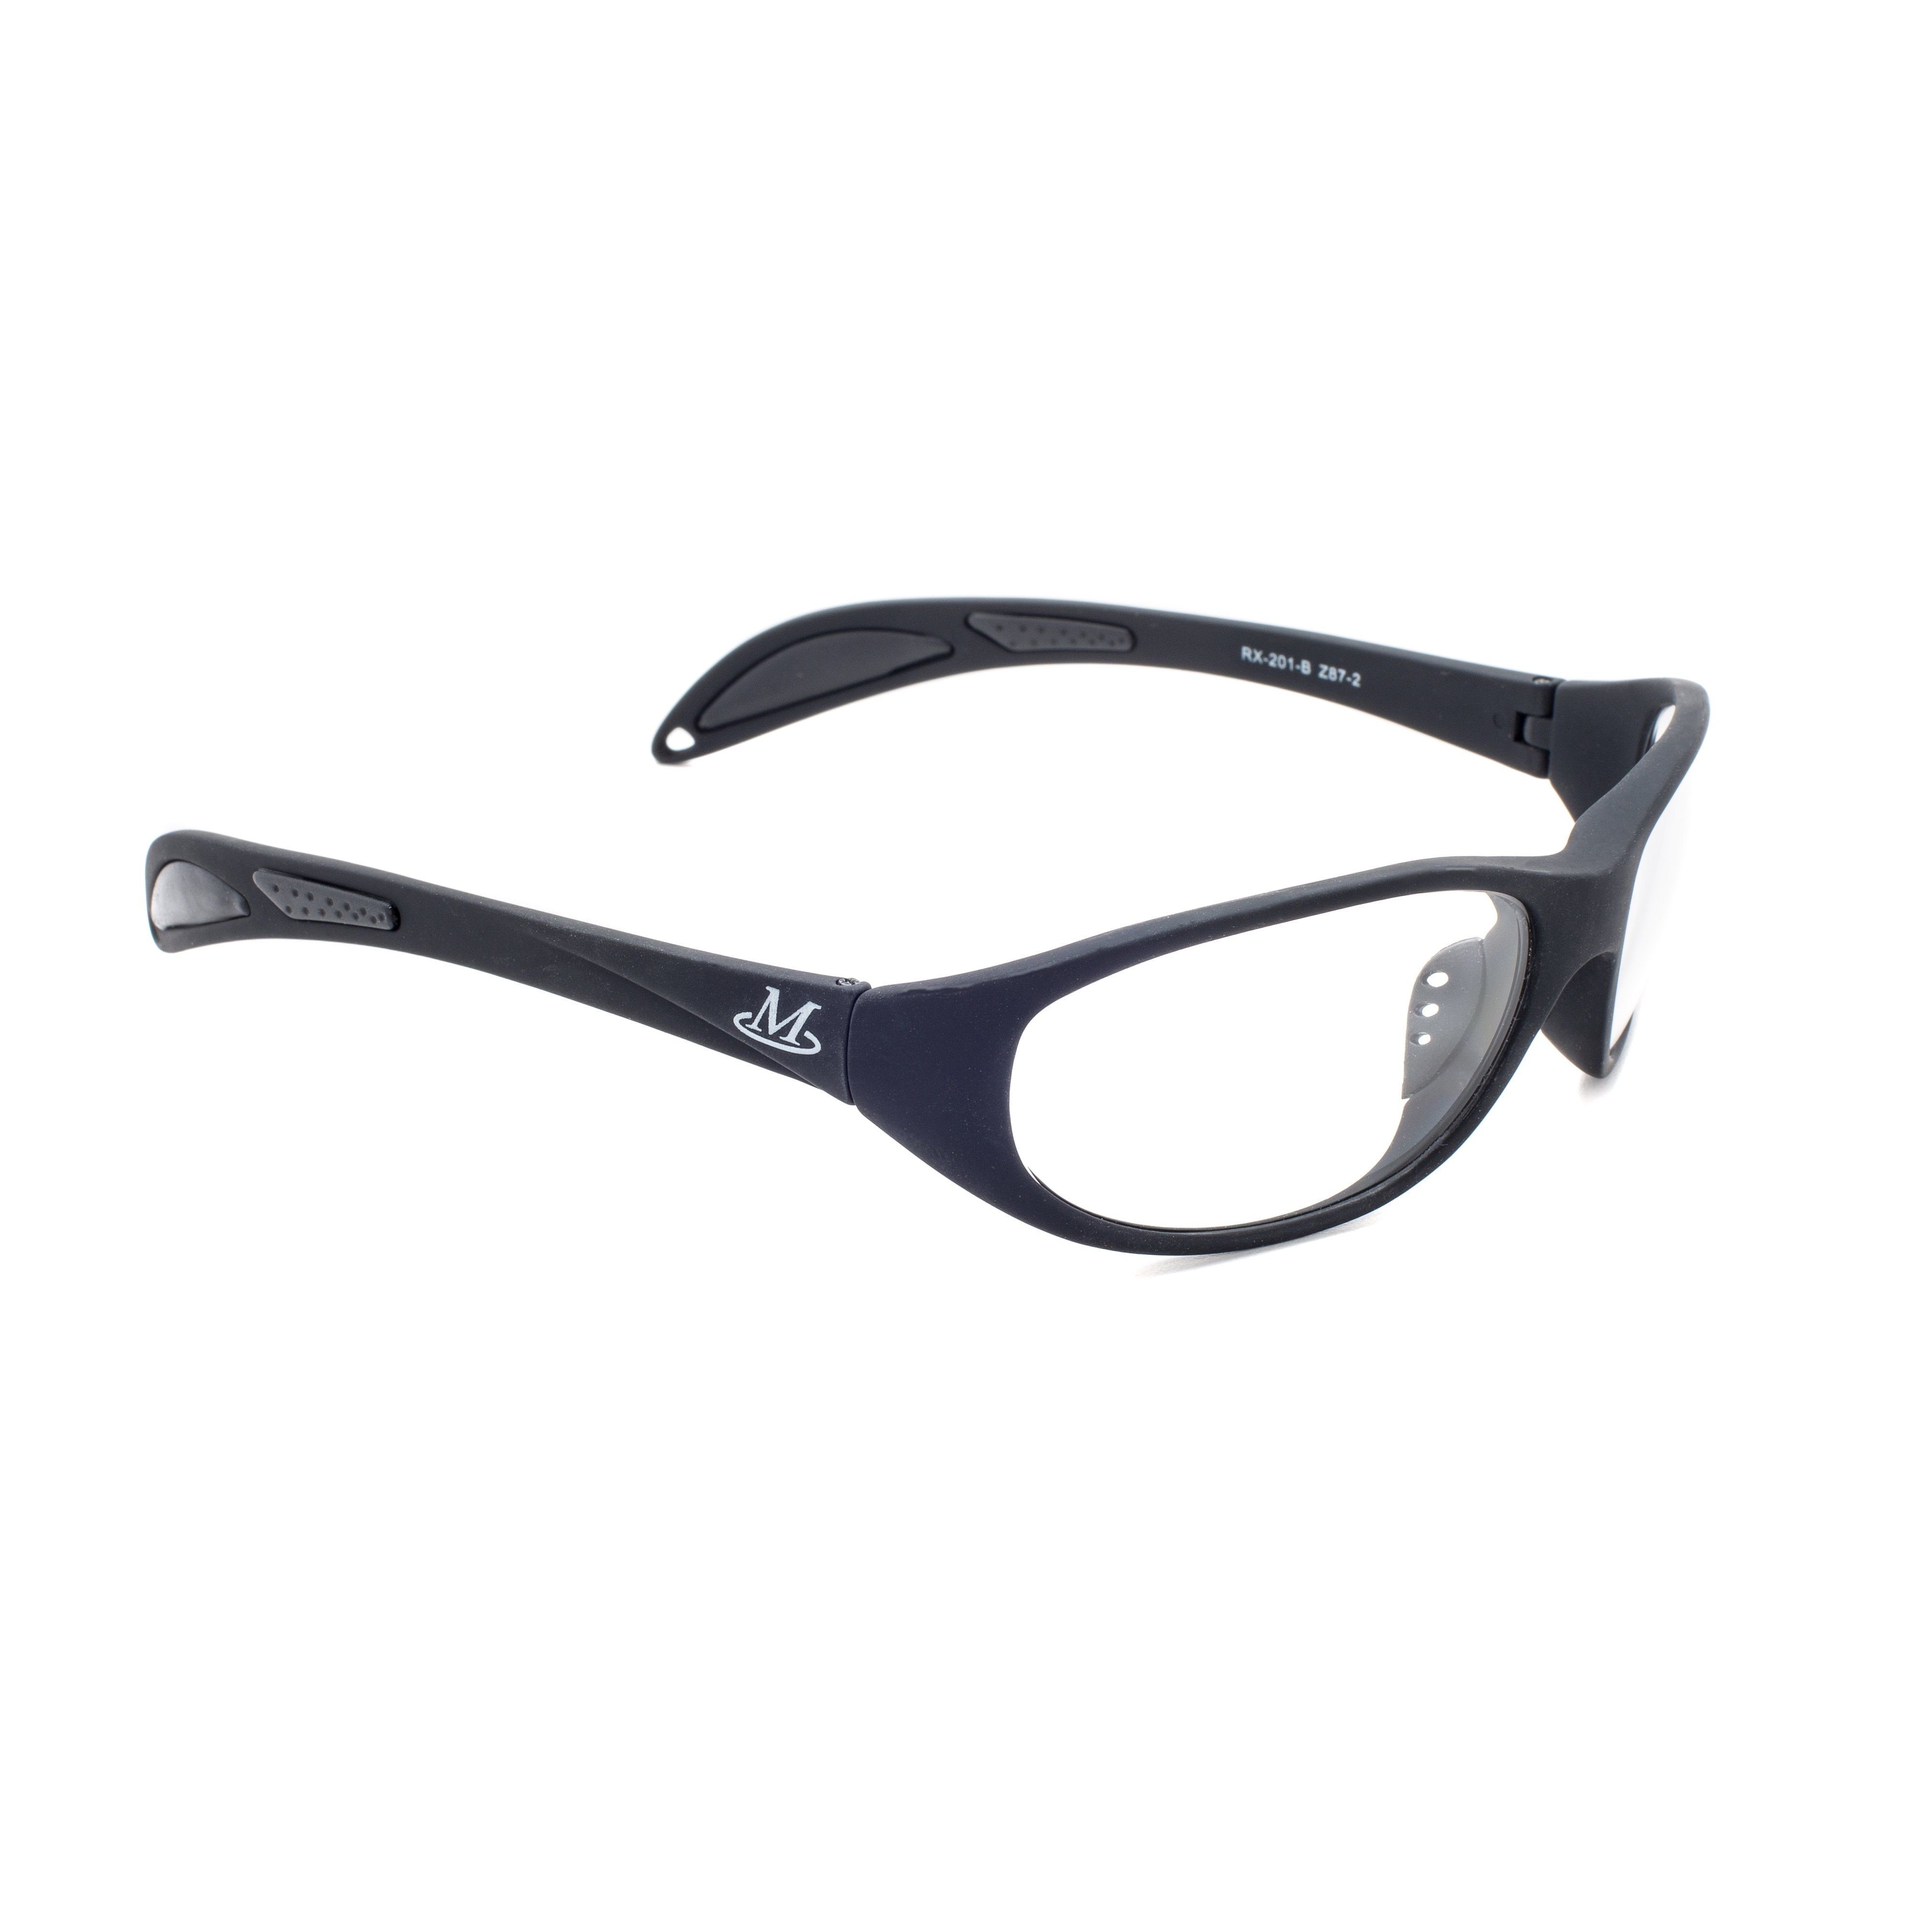 95c45fa98e9 Prescription Safety Glasses RX-201 - Prescription Safety Glasses